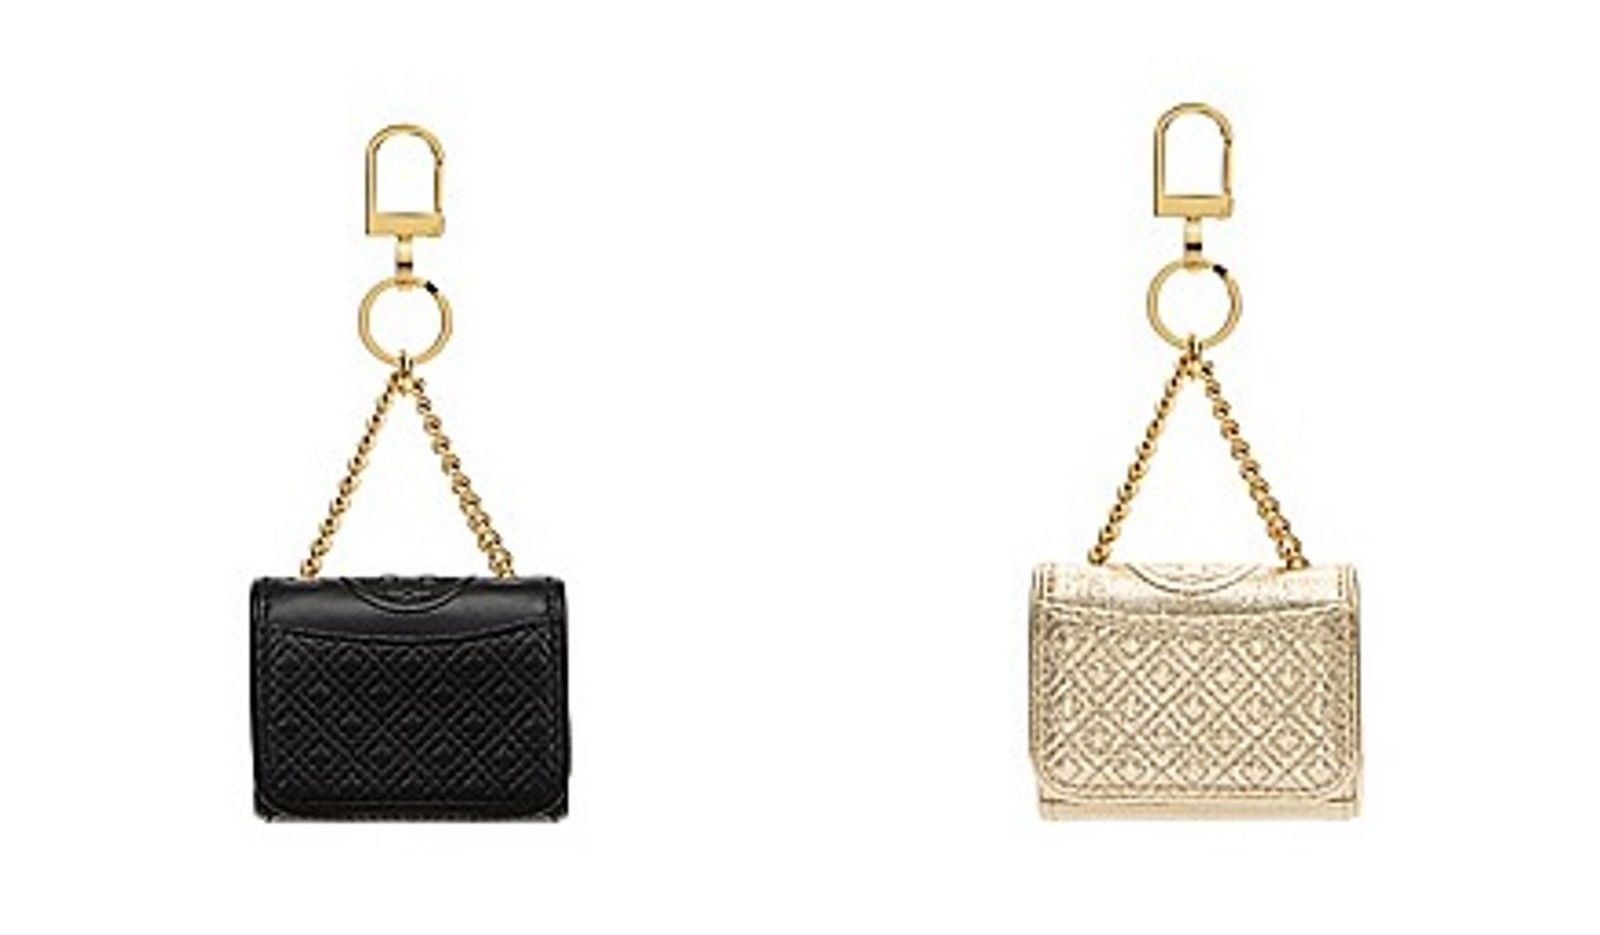 Tory Burch Leather Fleming Metallic Mini Key Fob / Bag Charm in Spark Gold/Black